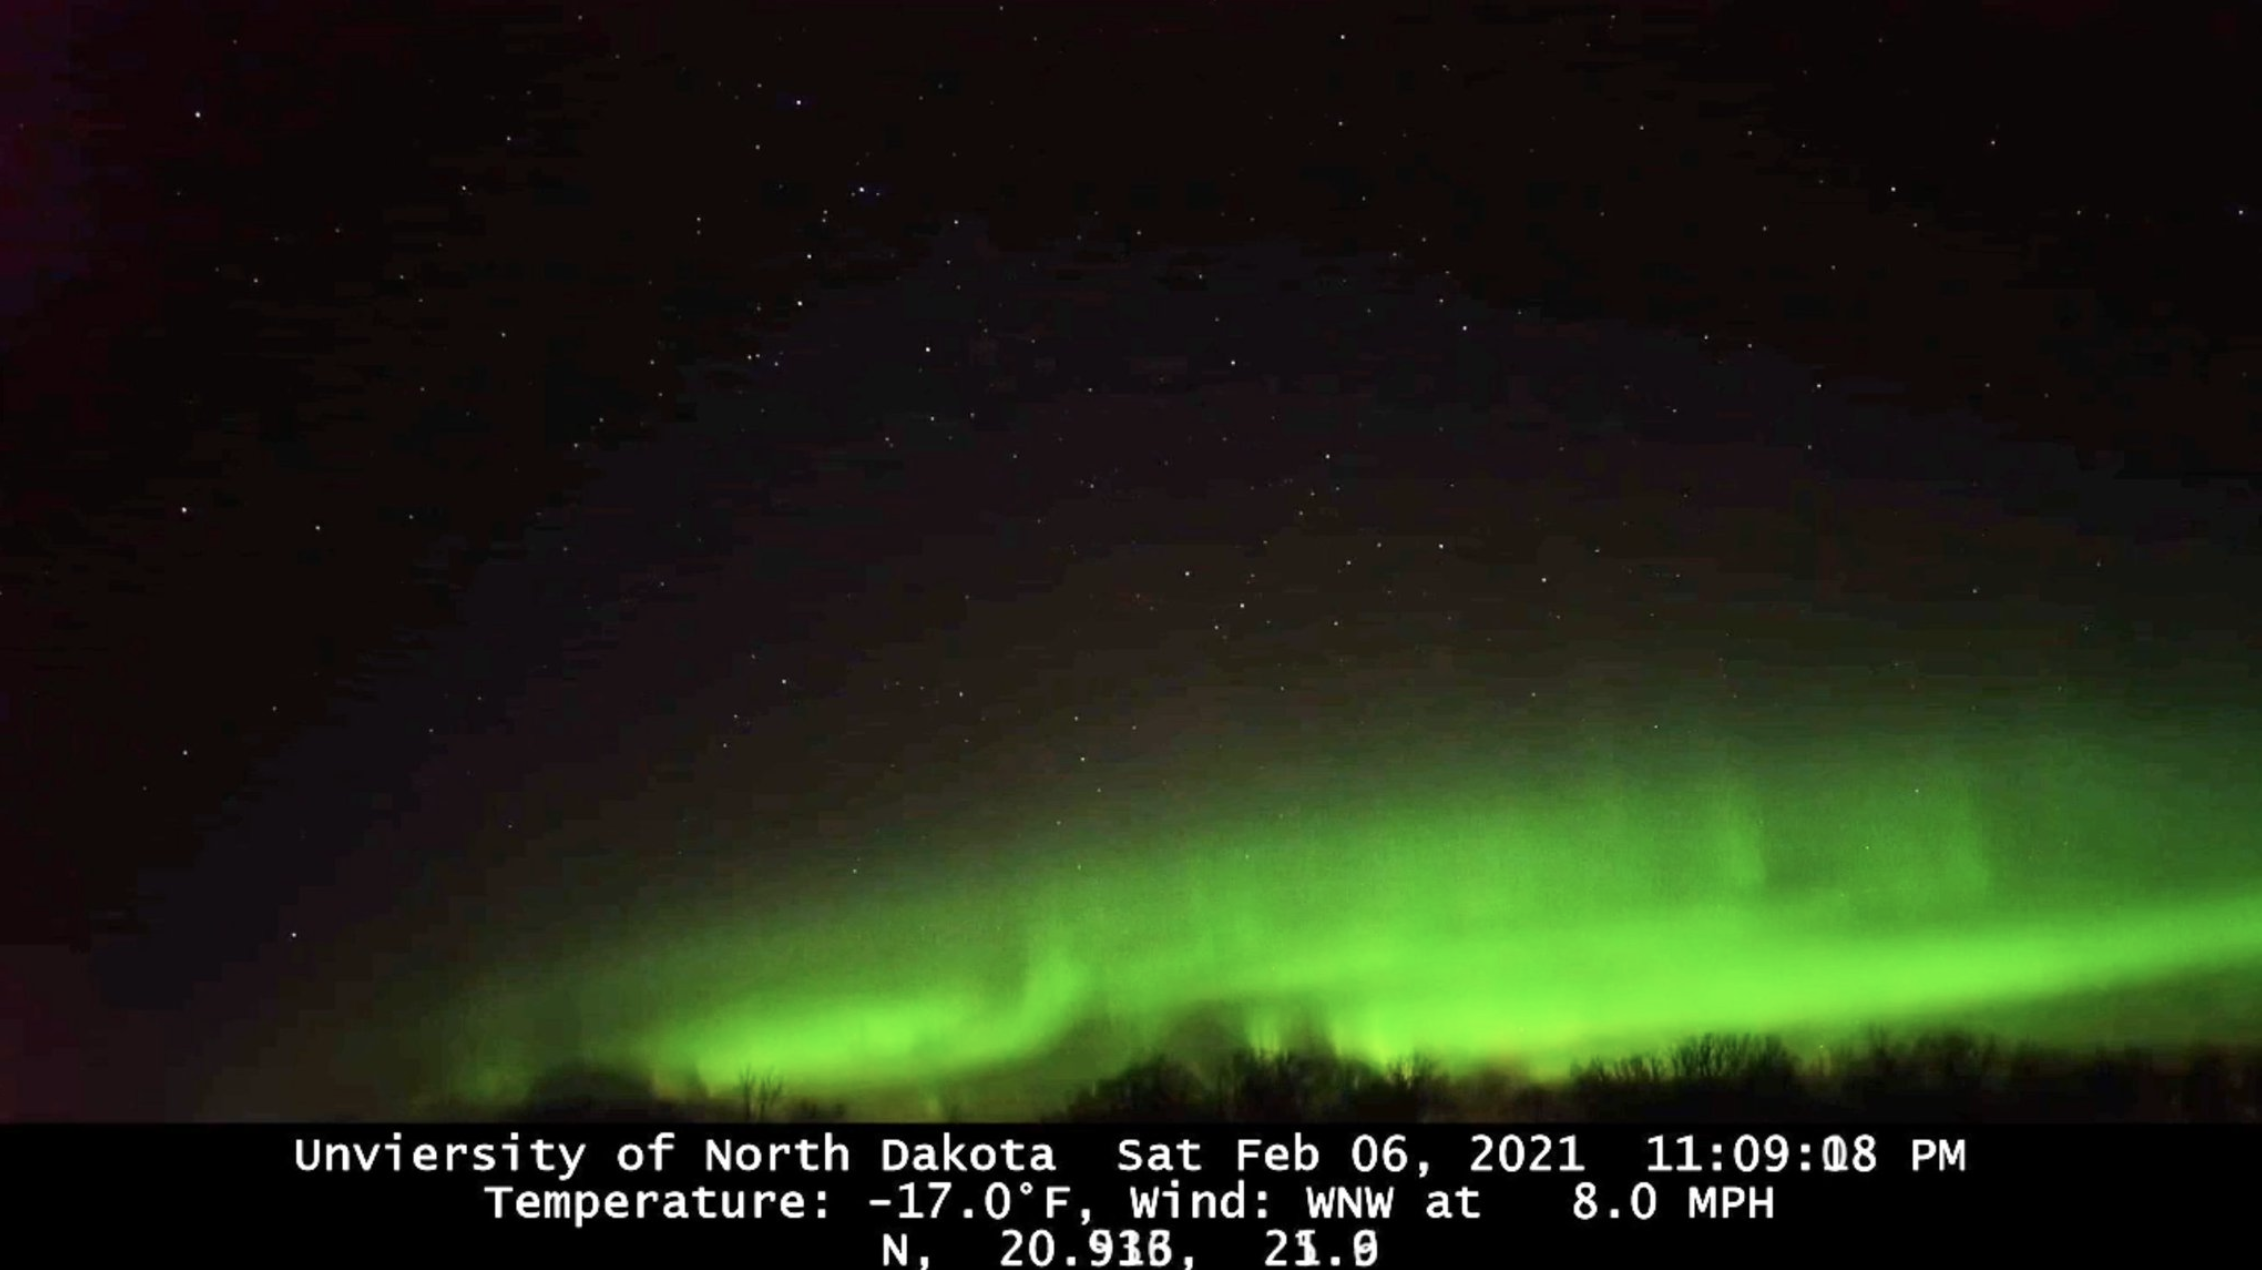 Green aurora against a black background with data listed at the bottom of the image